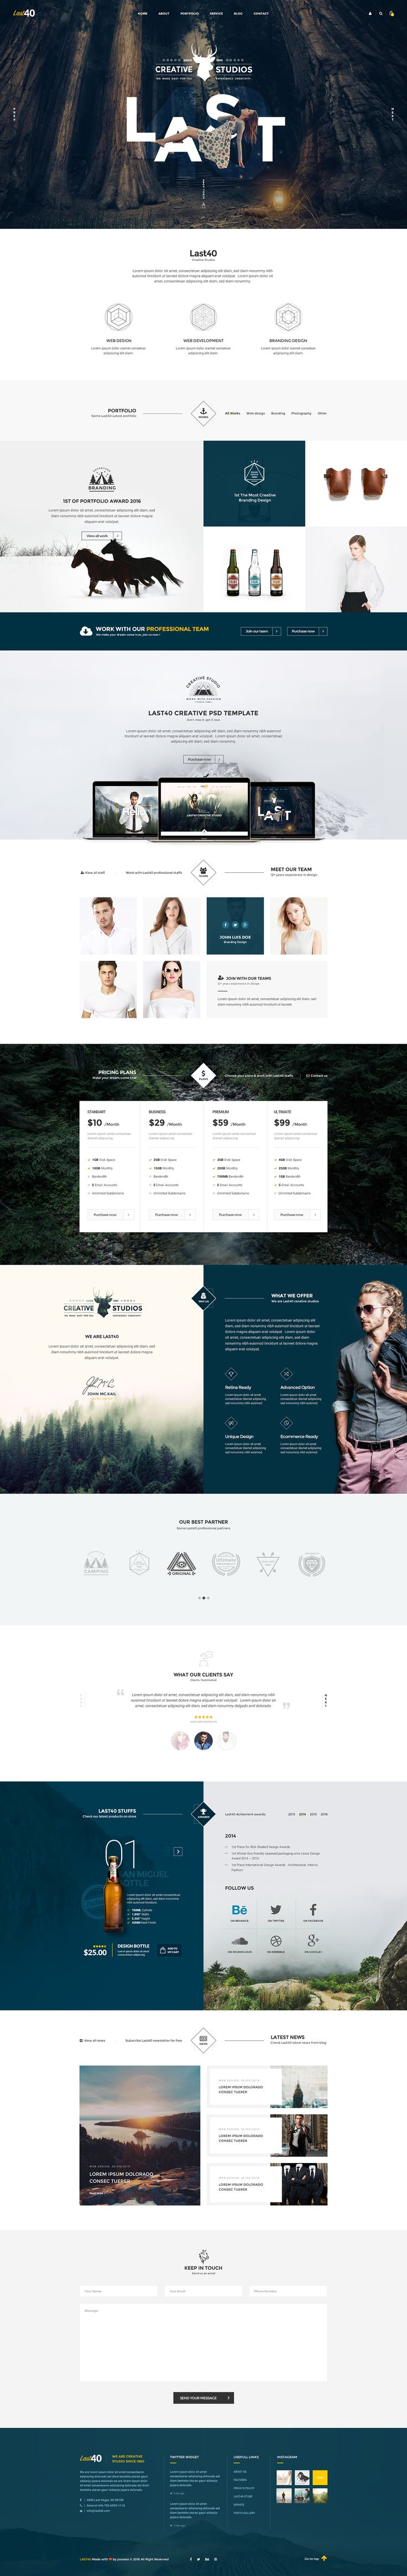 the whole package here : http://themeforest.net/item/last40-creative-psd-template/16007208?s_rank=1